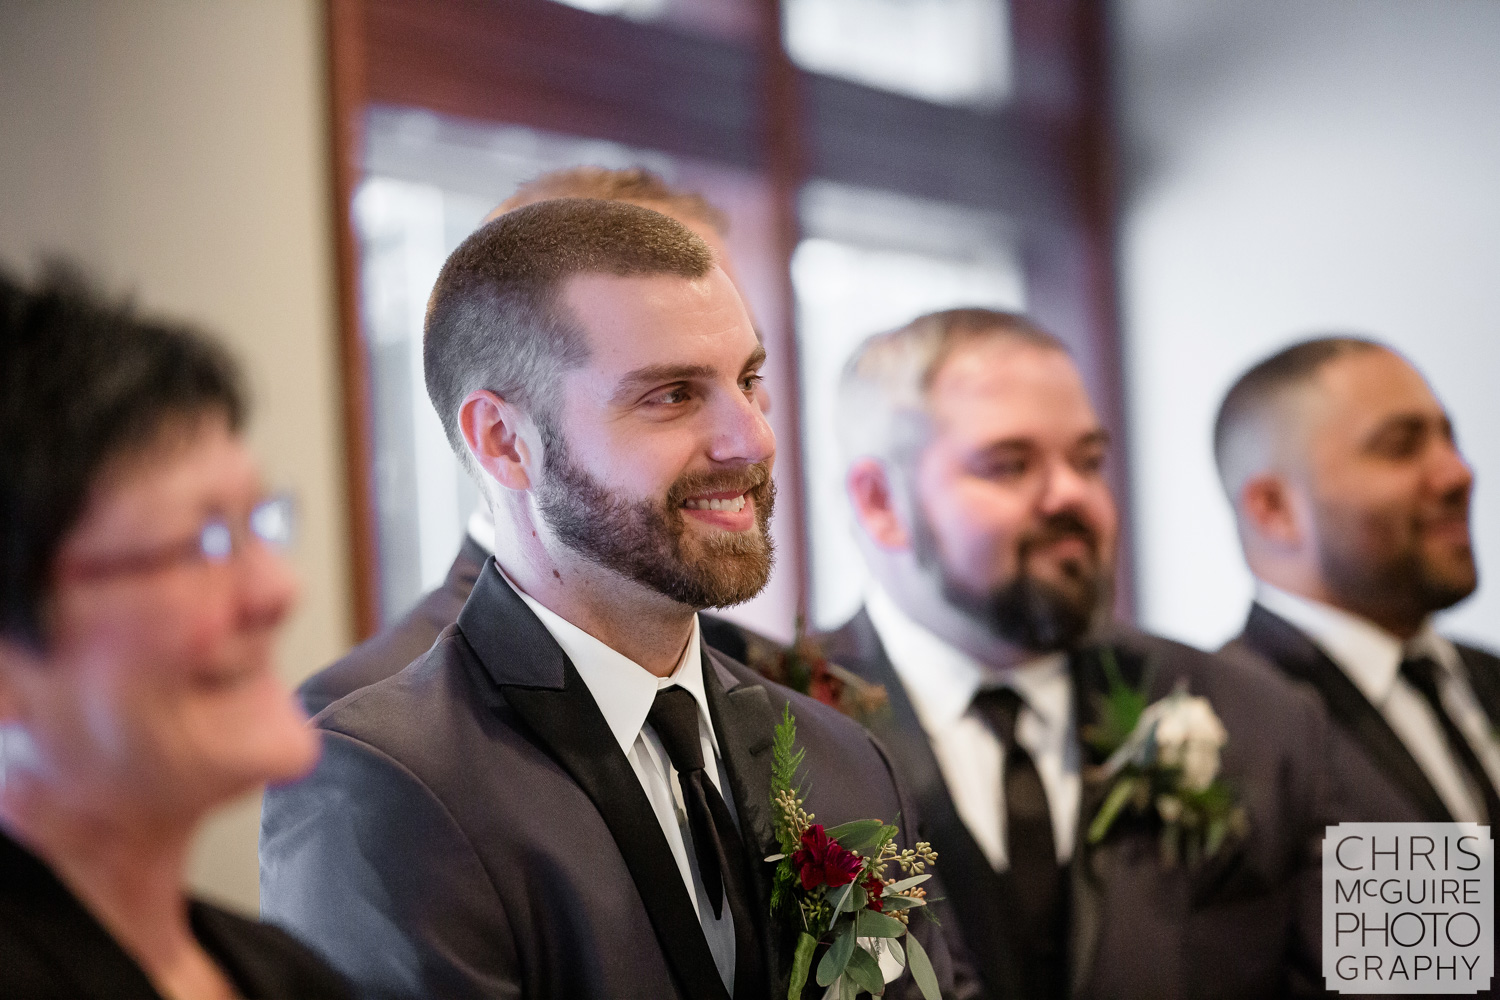 Groom's reaction to bride in aisle